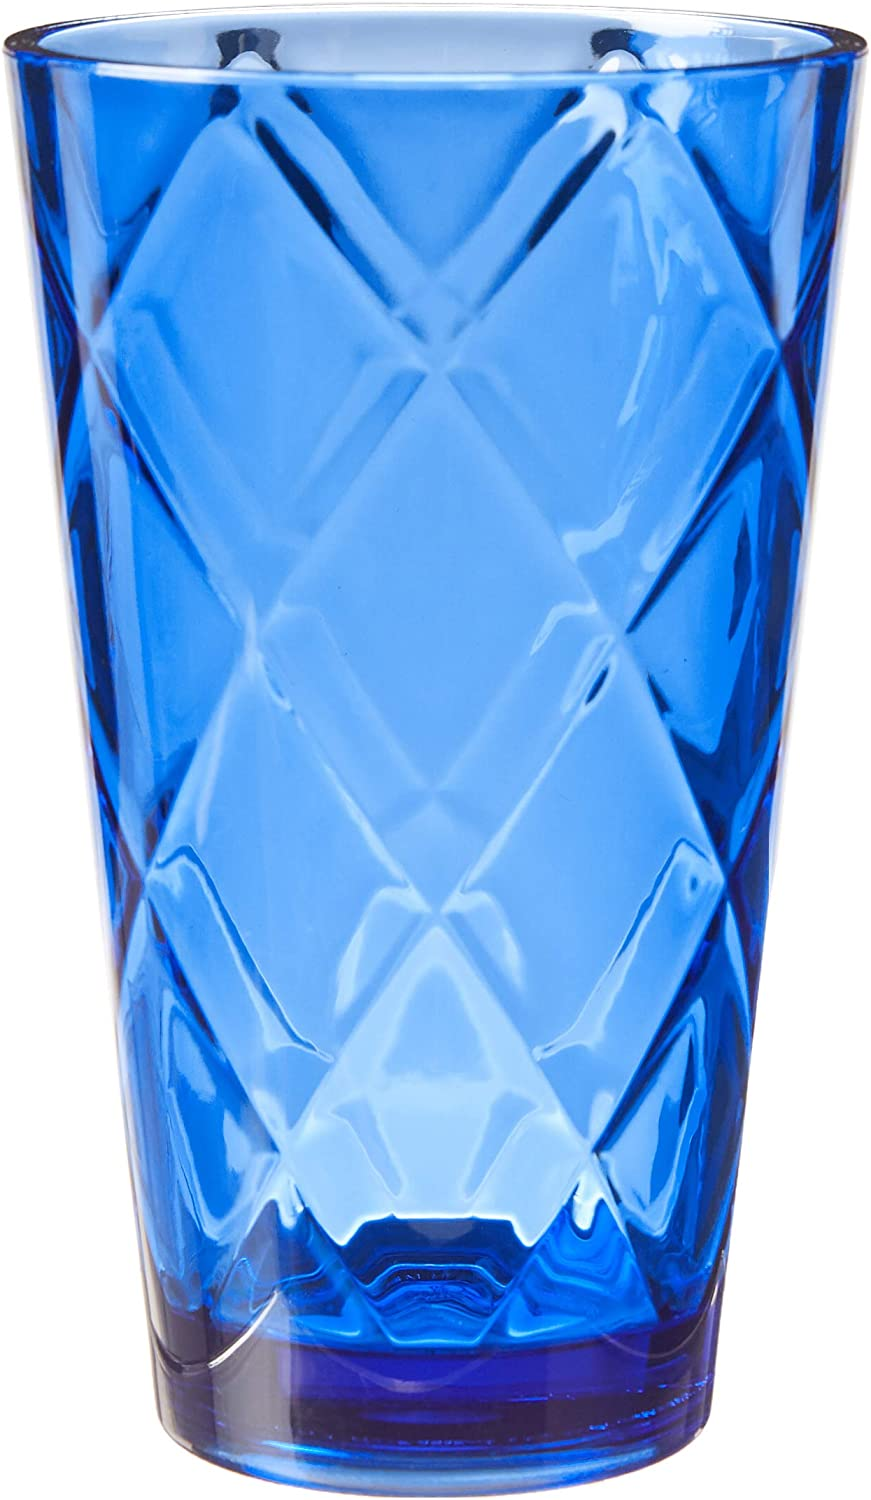 Certified International Cobalt Blue 20 oz Acrylic Ice Tea Drinkware (Set of 12), Cobalt Blue